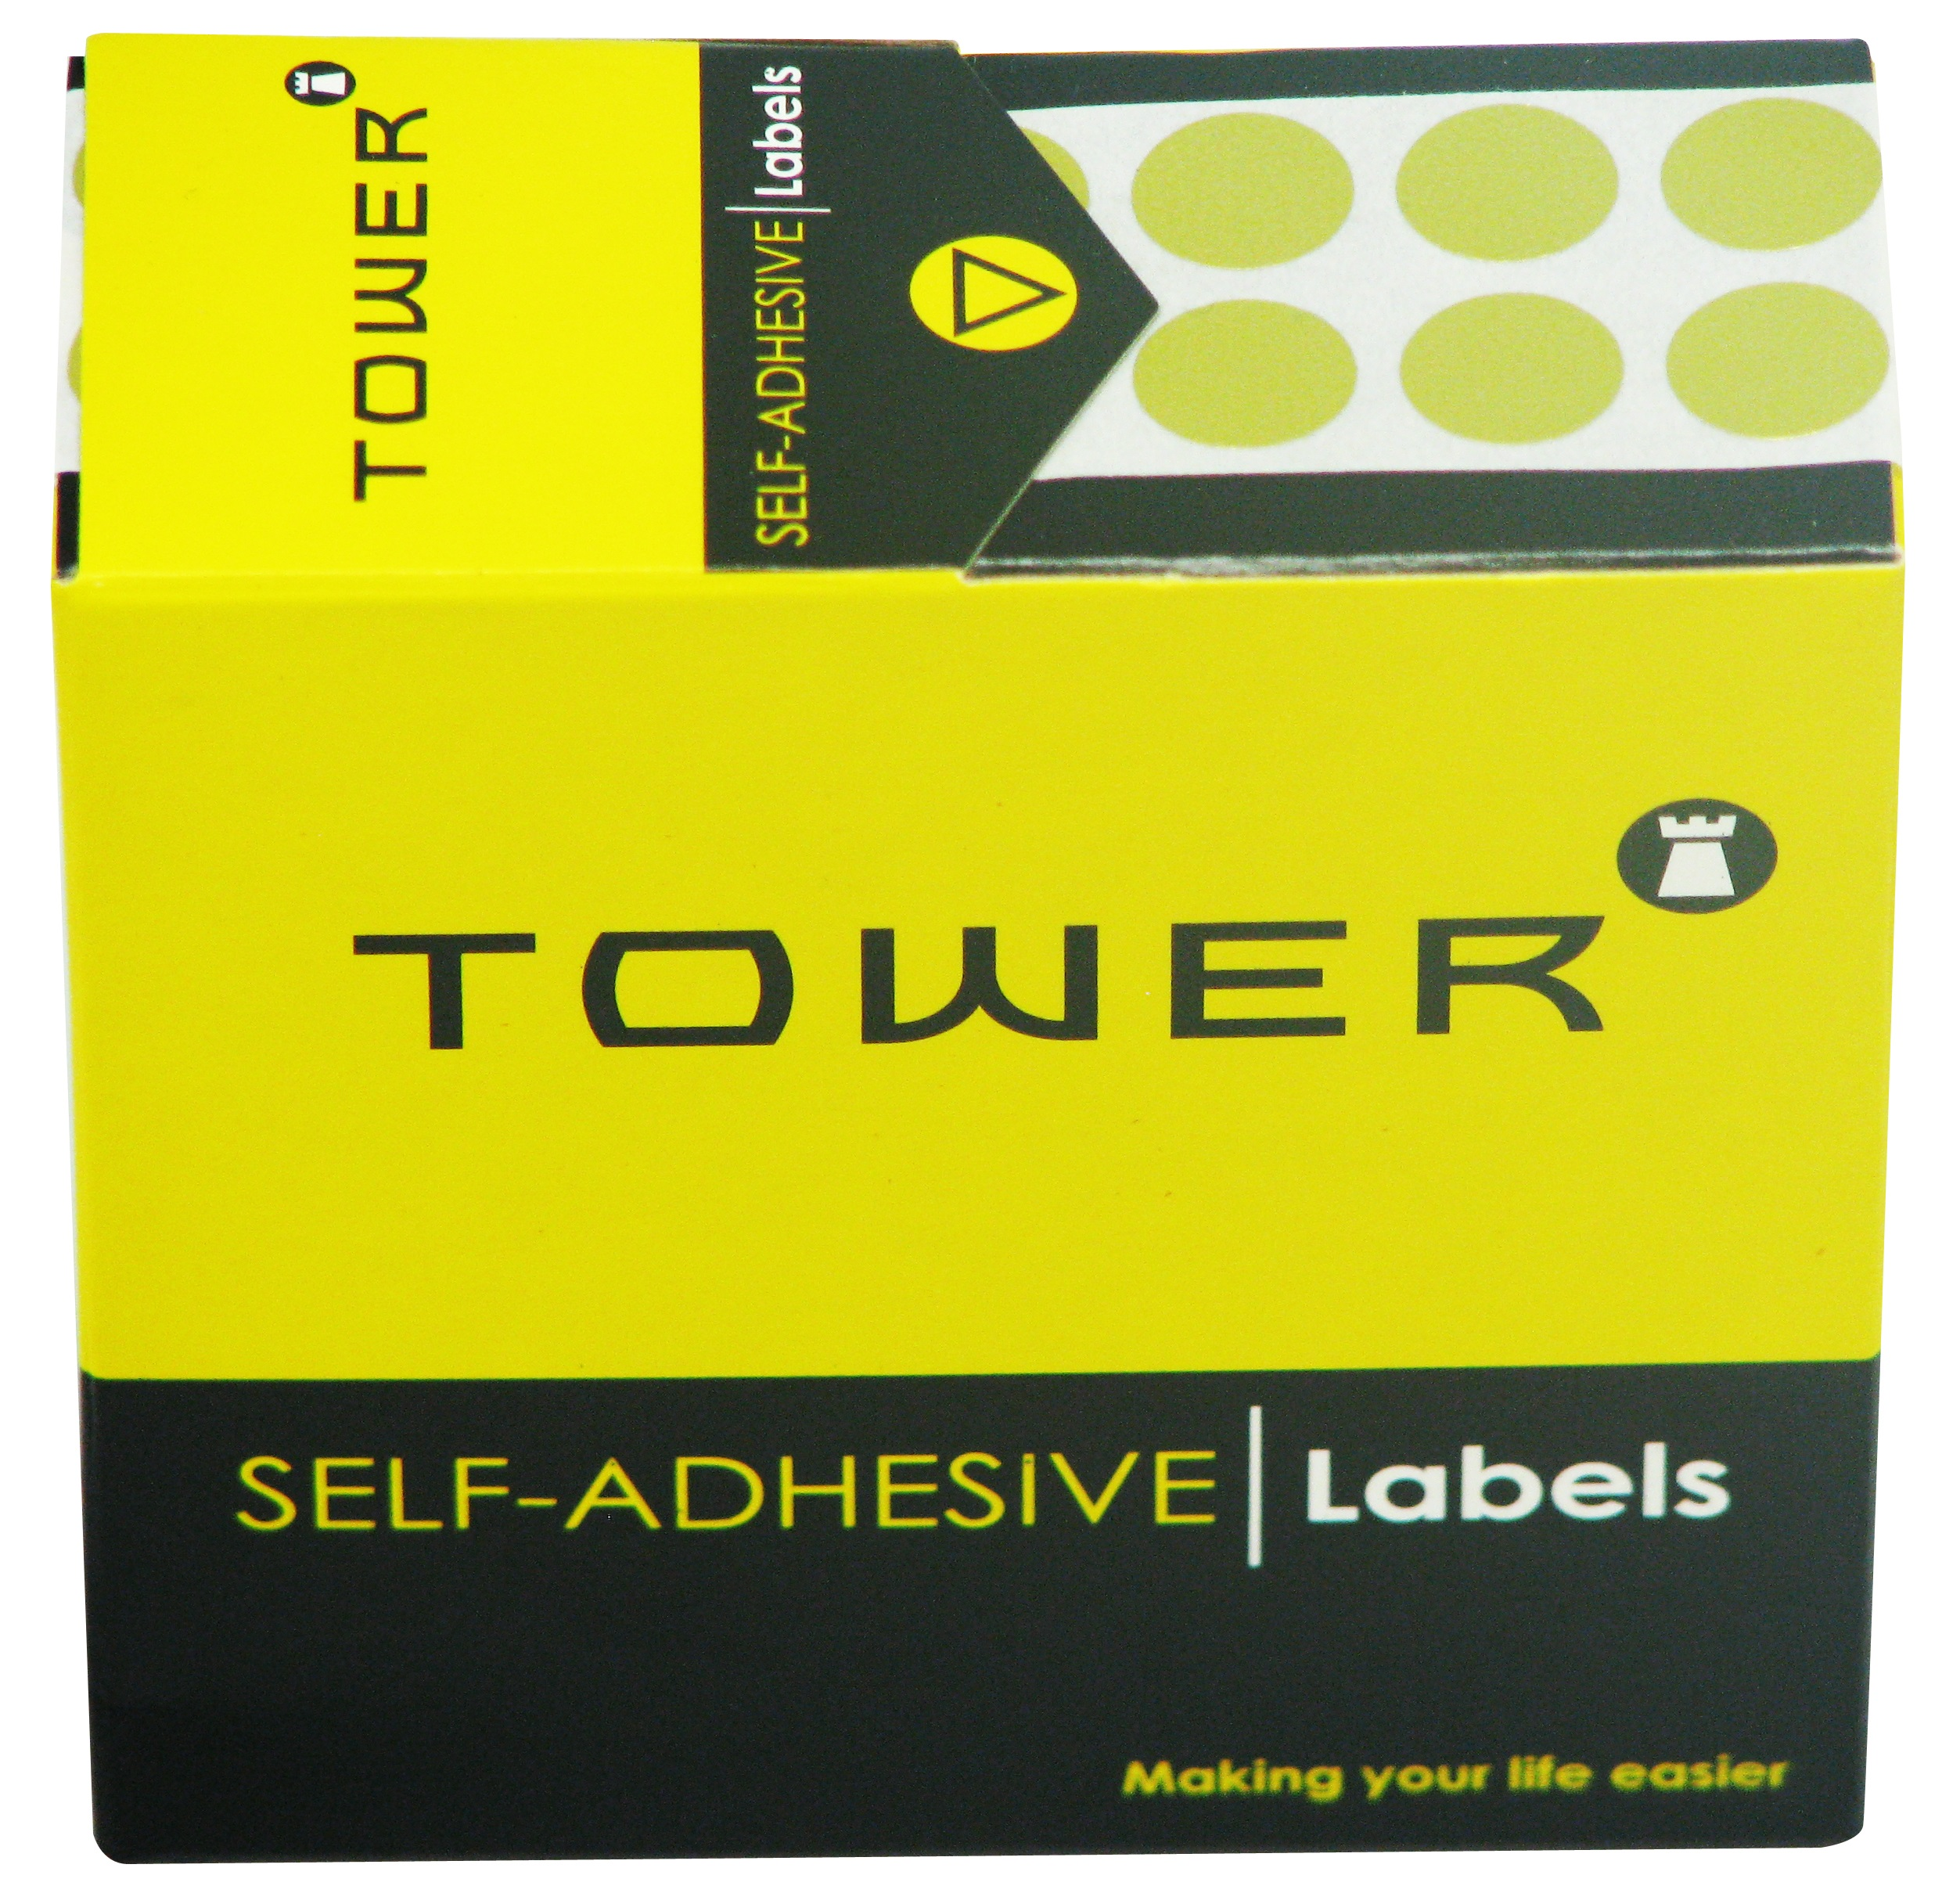 Tower C13 Label Gold